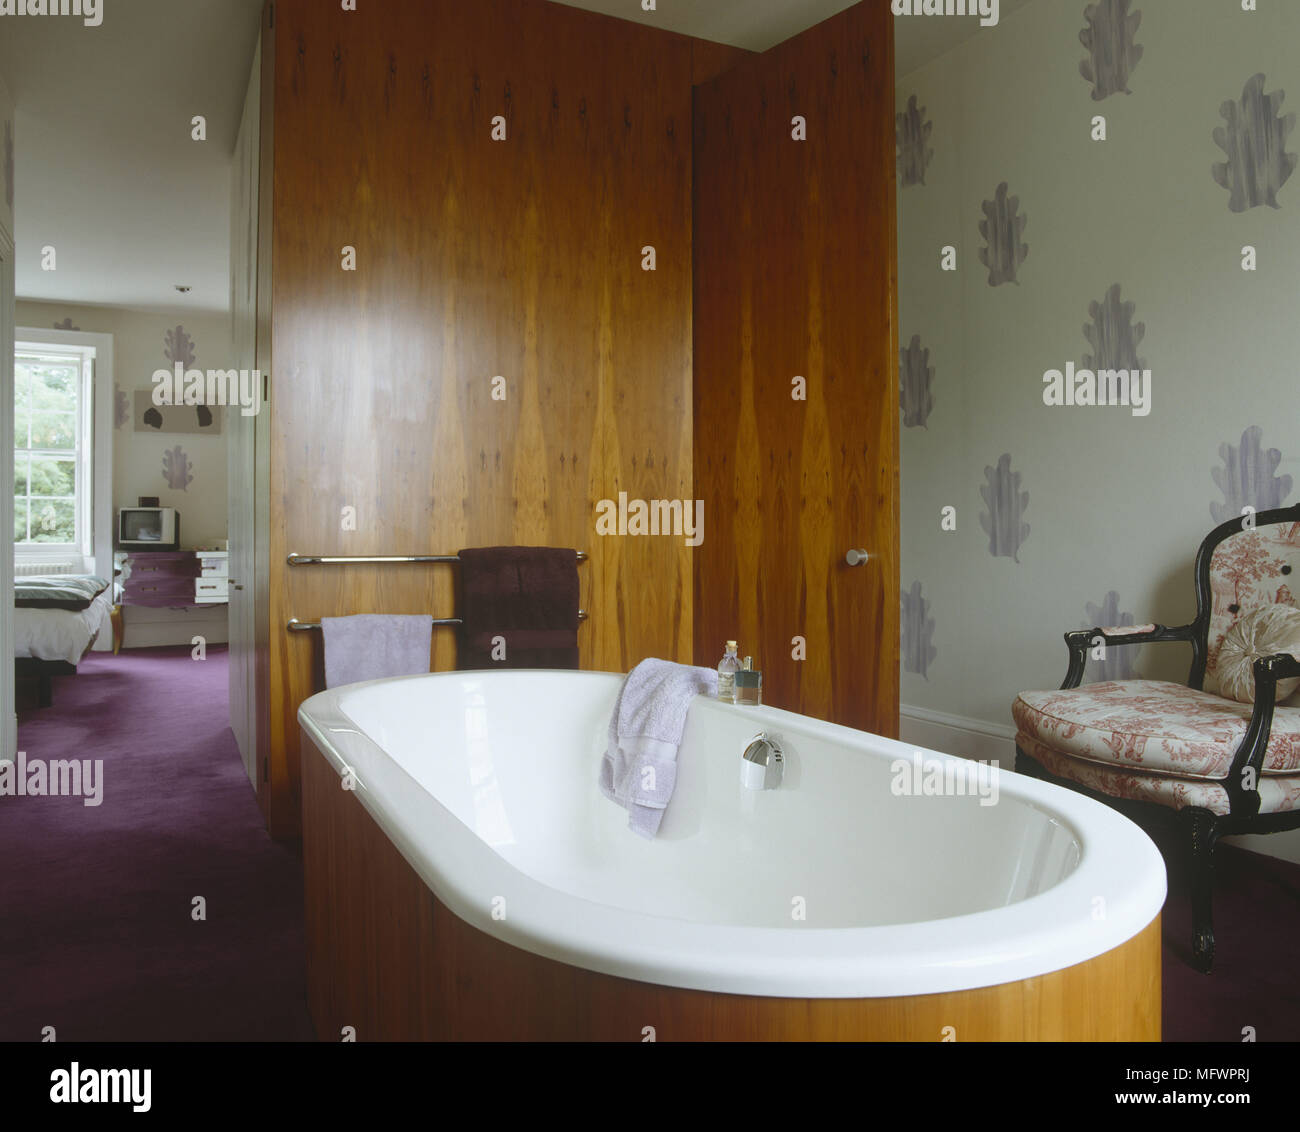 Wood panelled bathtub next to upholstered chair and wooden panelled ...